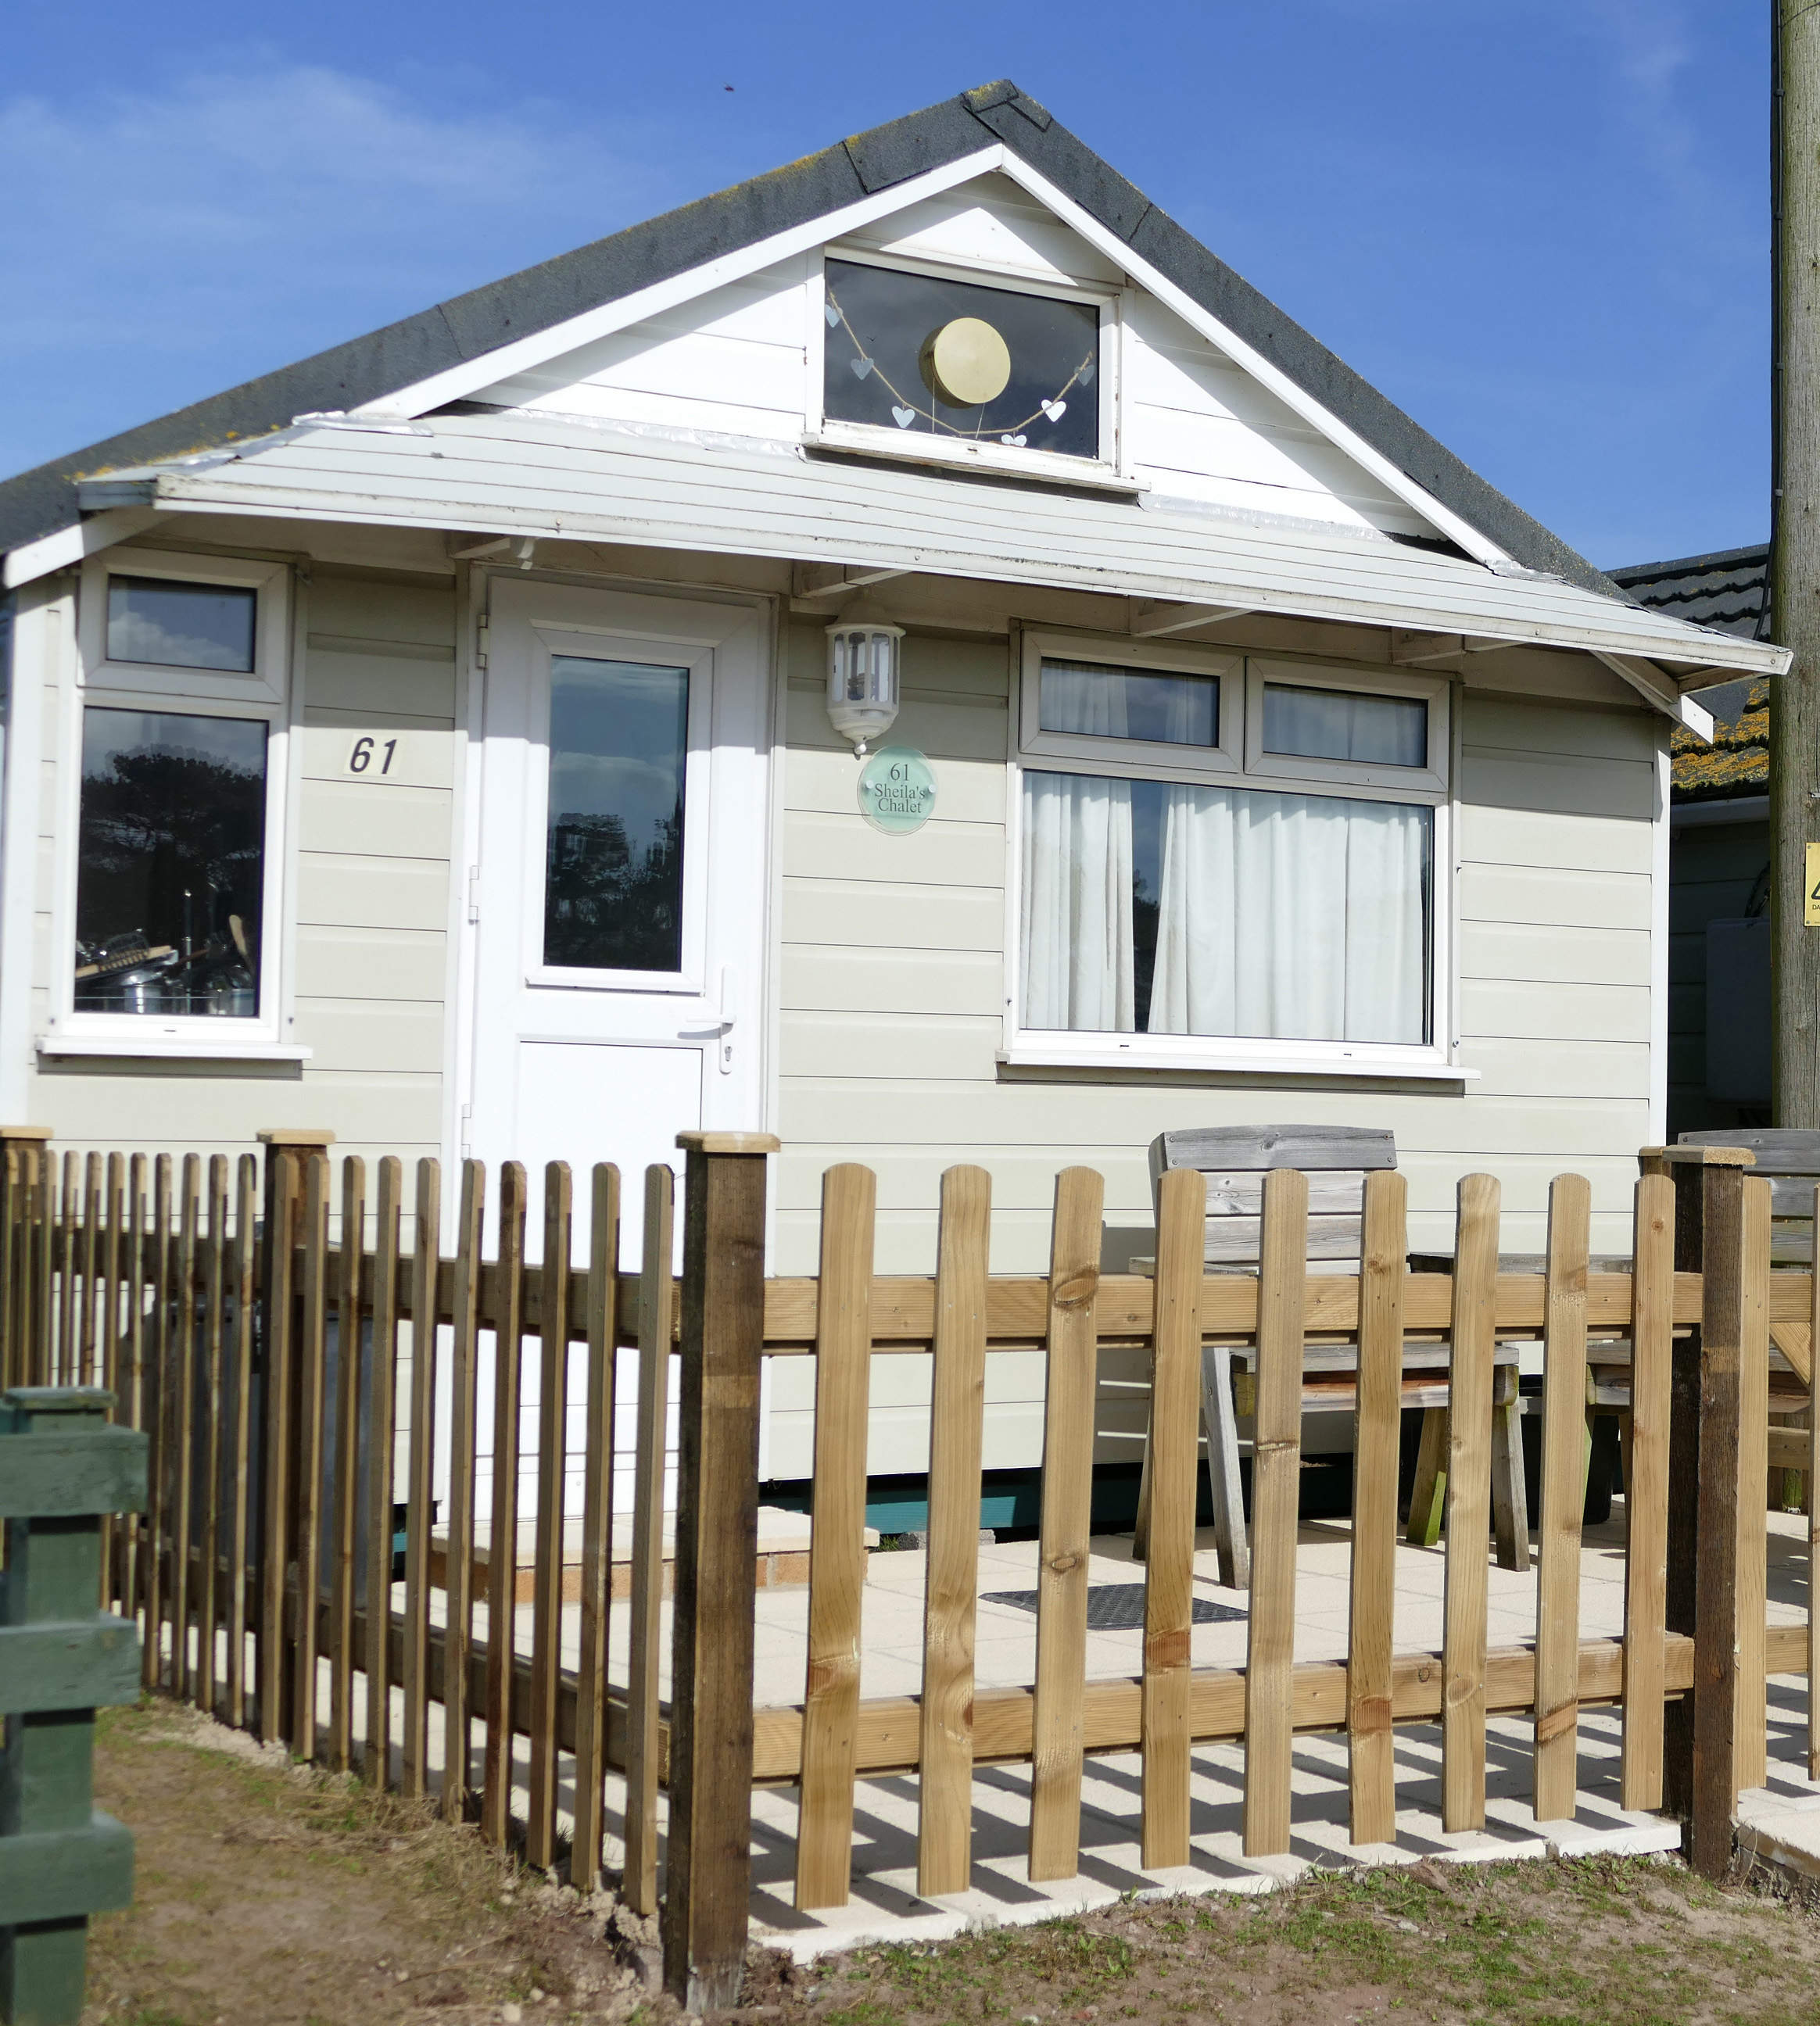 number 61 dunster beach